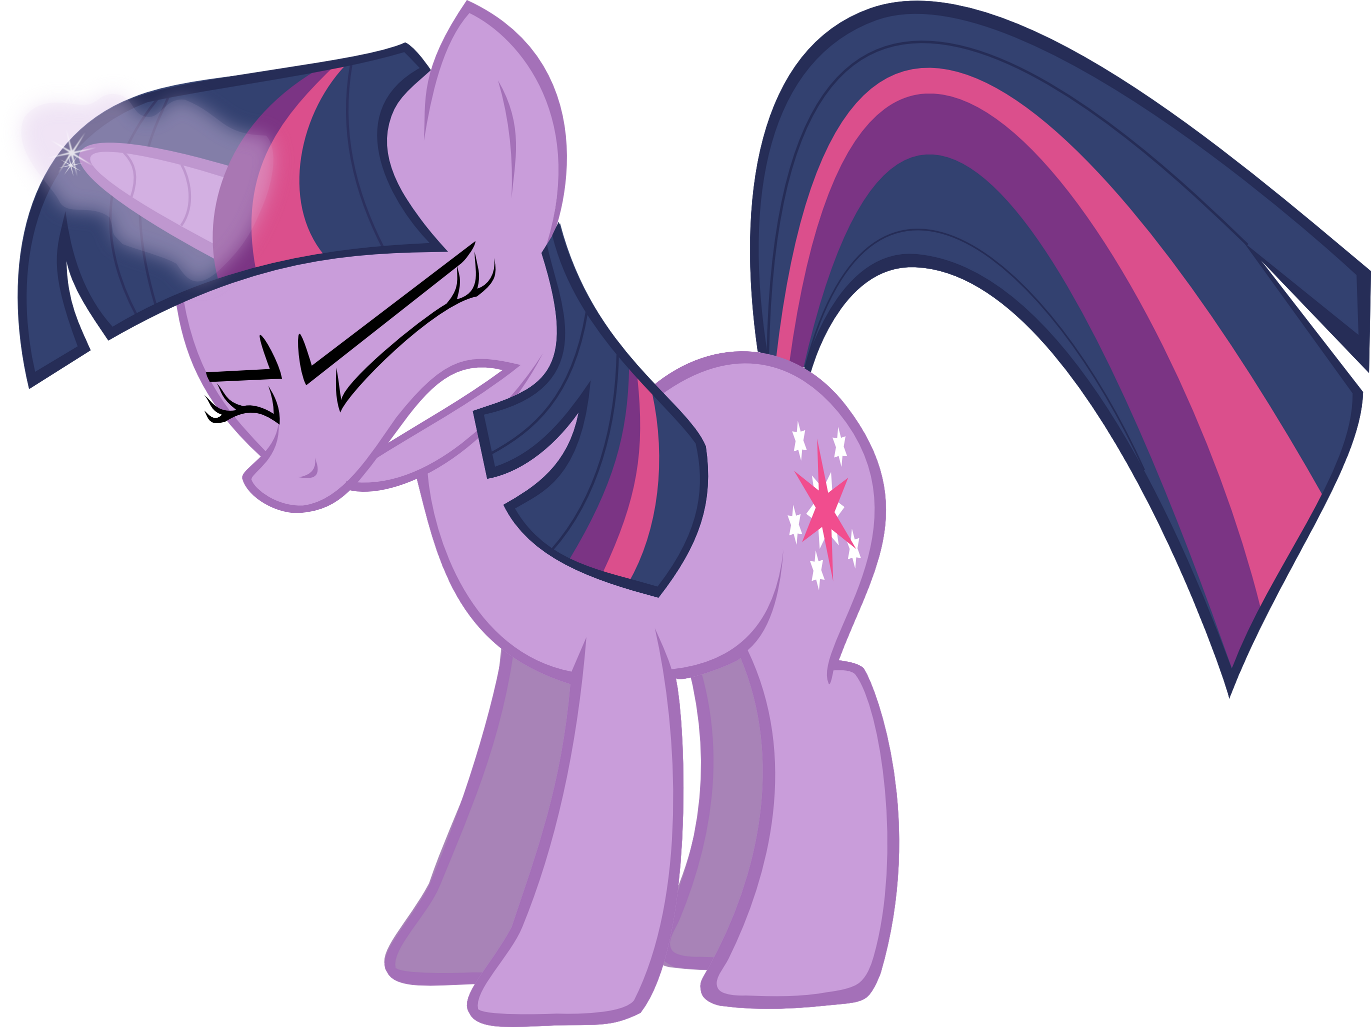 twilight_sparkle_frustrated_by_areyesram